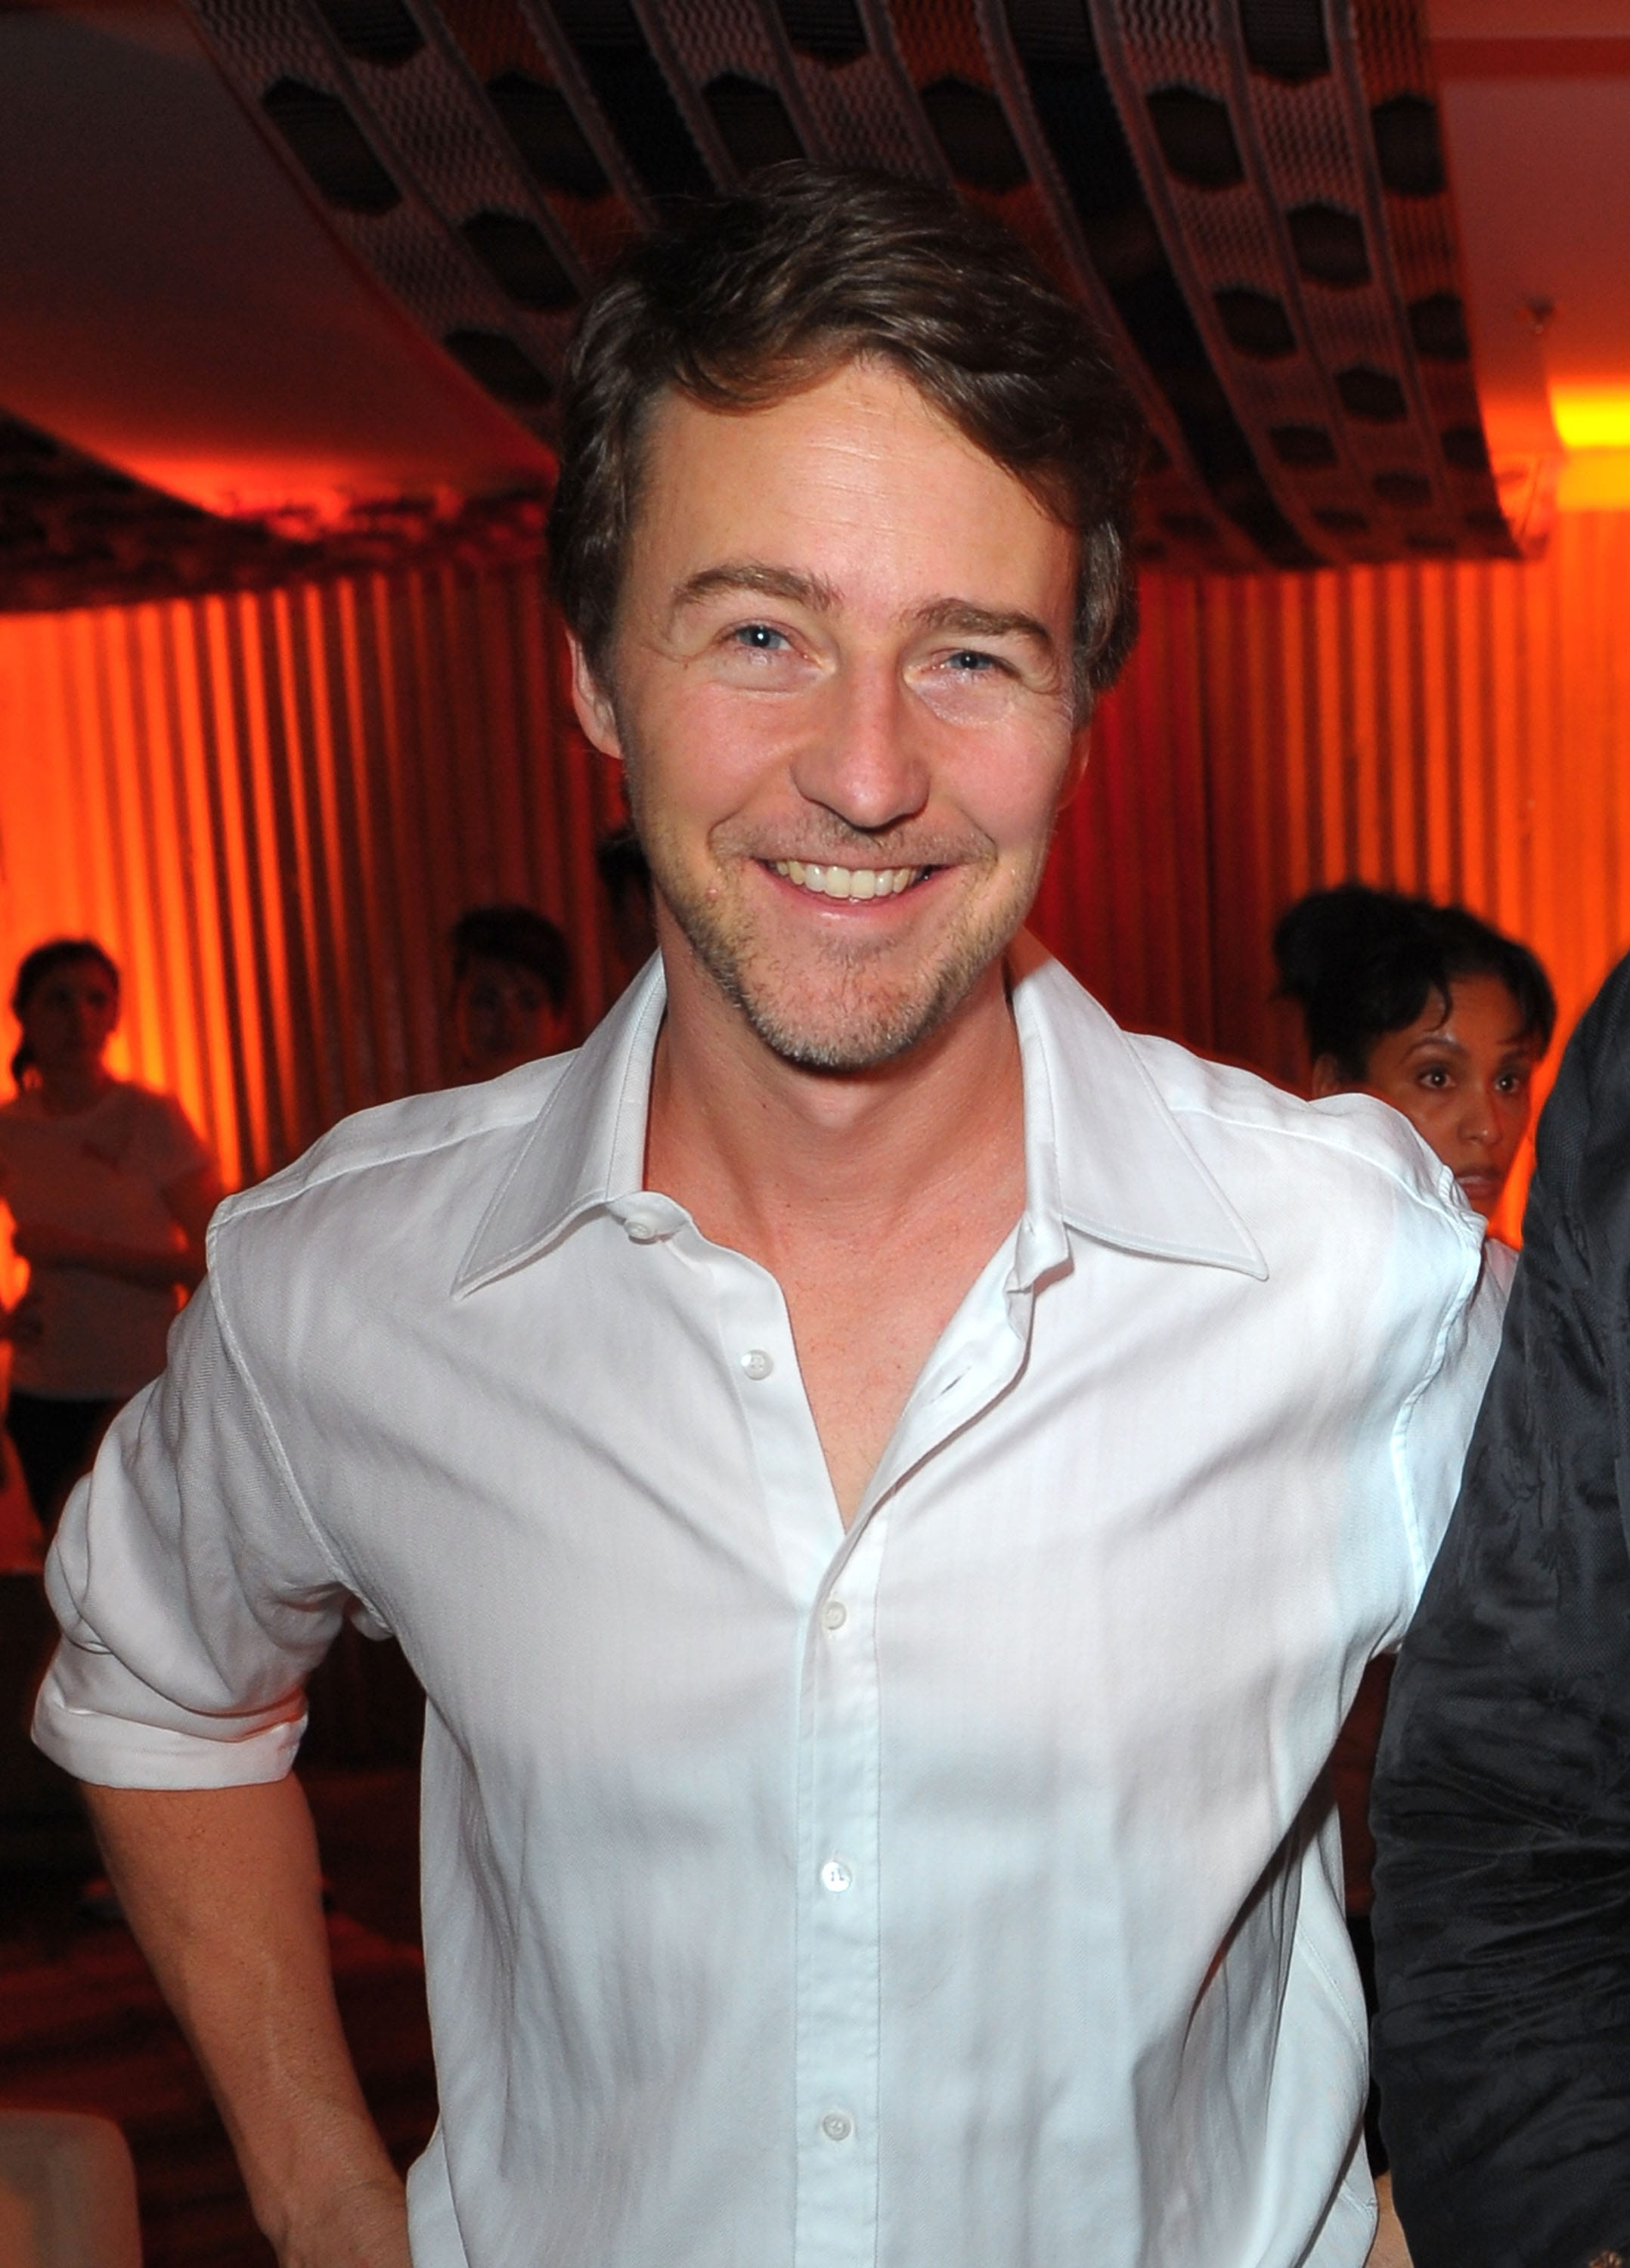 Edward Norton For mobile